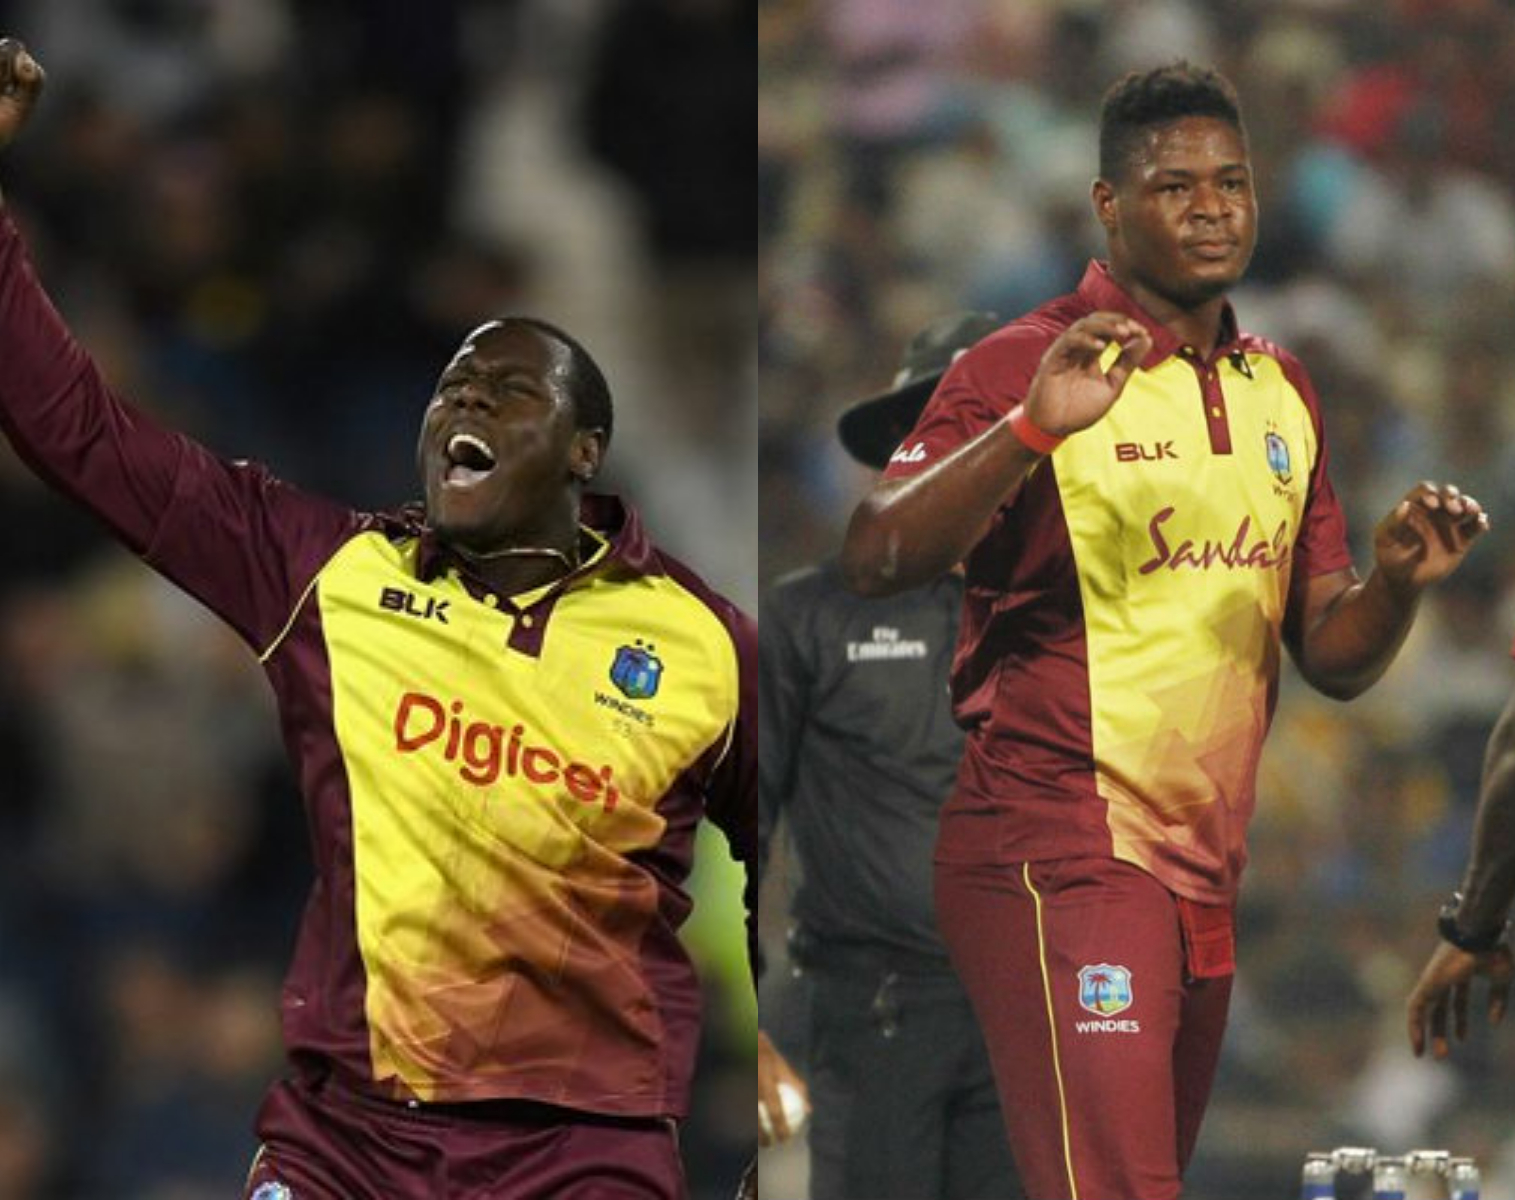 Carlos Brathwaite and Oshane Thomas made the Indian batsmen work hard for runs